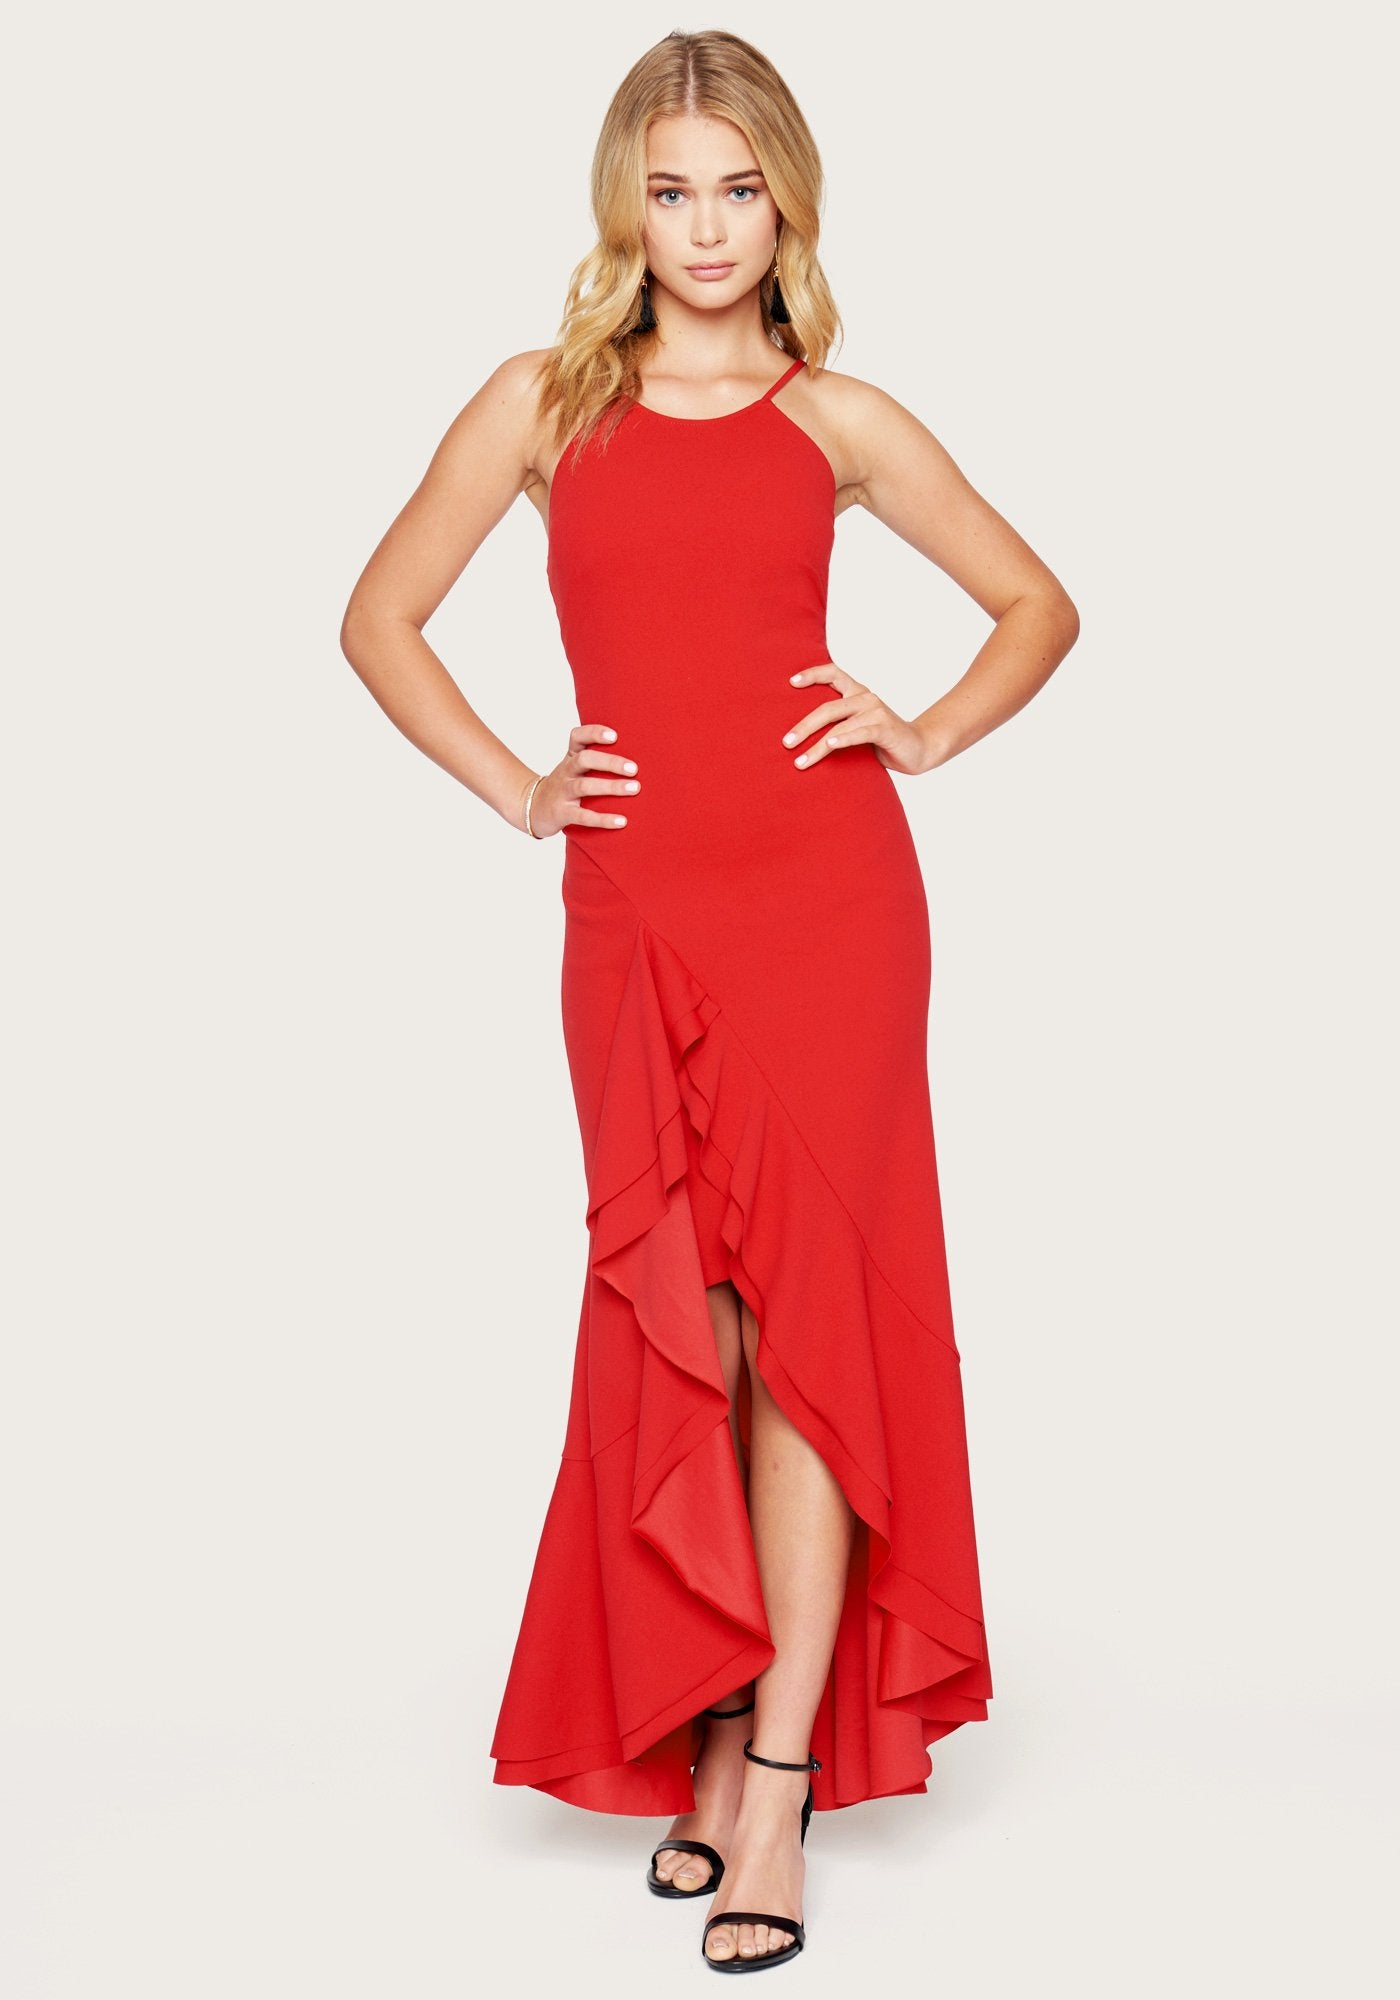 Bebe Women's Flounce Strappy Maxi Dress, Size 00 in Red Spandex